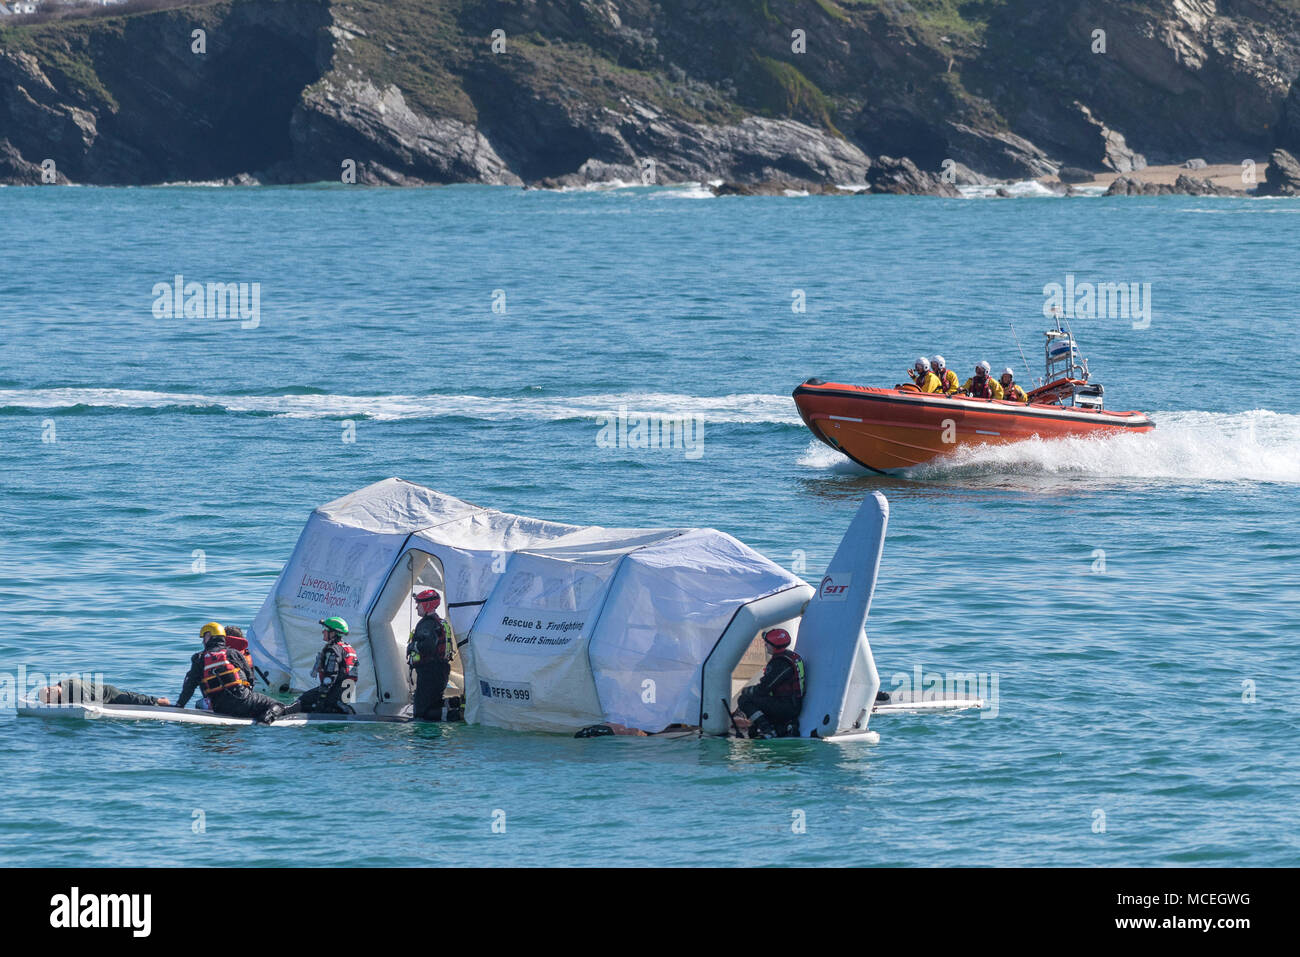 The Newquay RNLI B Class Atlantic 85 inshore craft participating in a GMICE (Good Medicine in Challenging Environments) major exercise in Newquay. - Stock Image